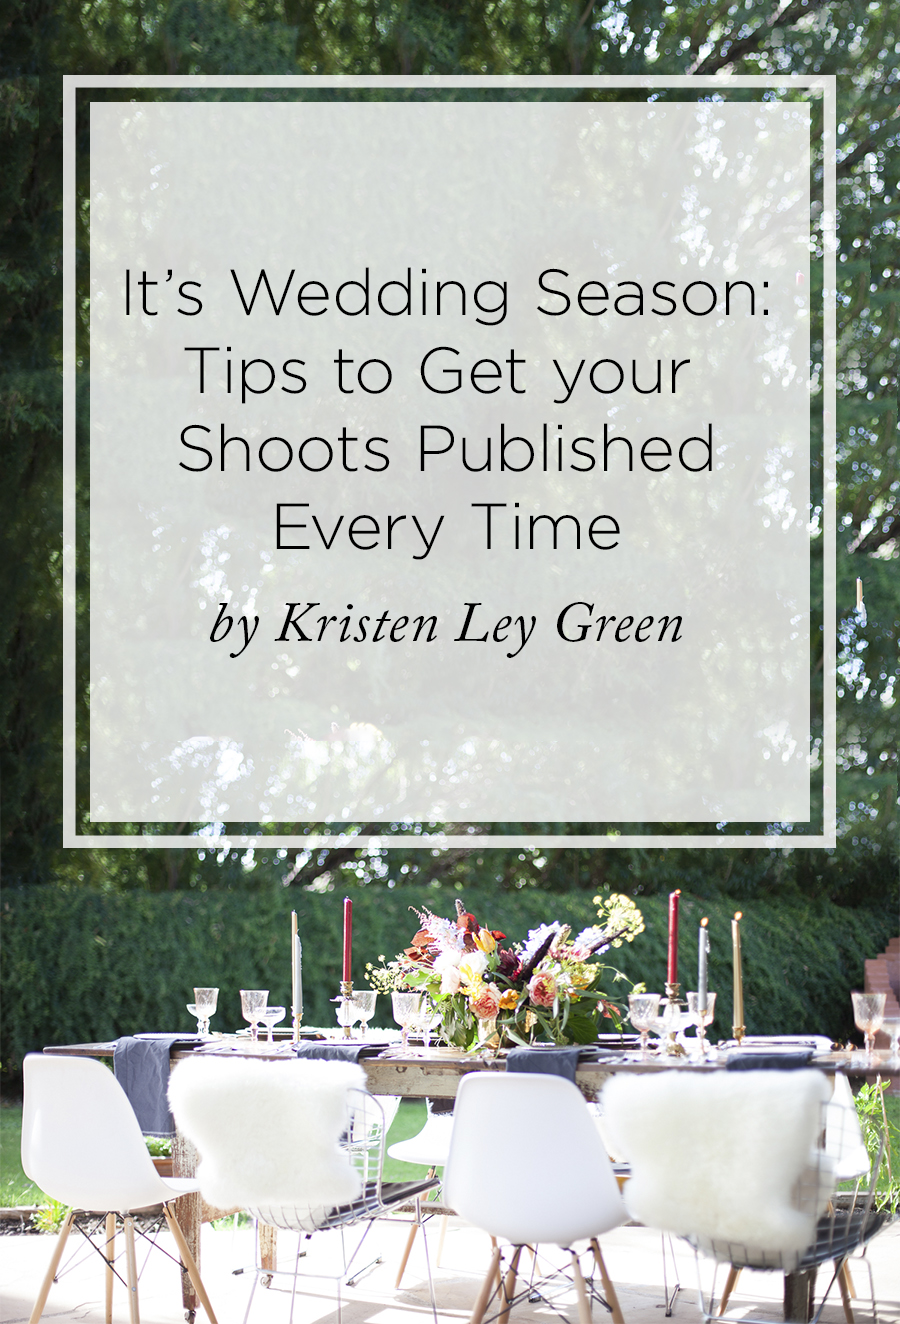 Tips for getting your weddings and shoots published every time